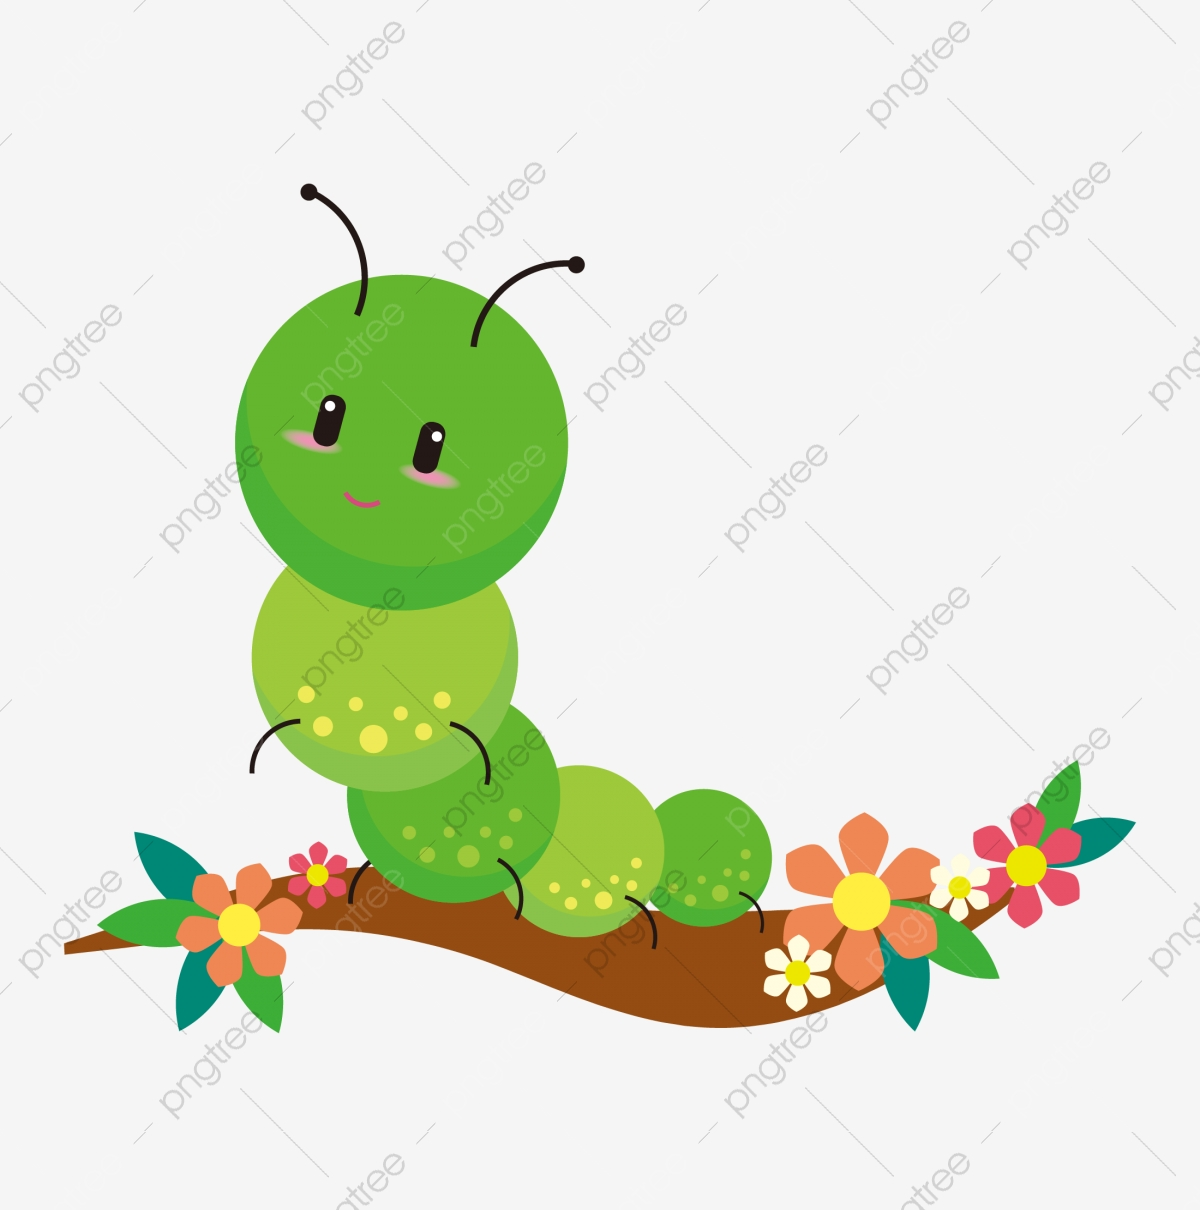 Caterpillar Cartoon Cartoon Clipart Cartoon Caterpillar Png And